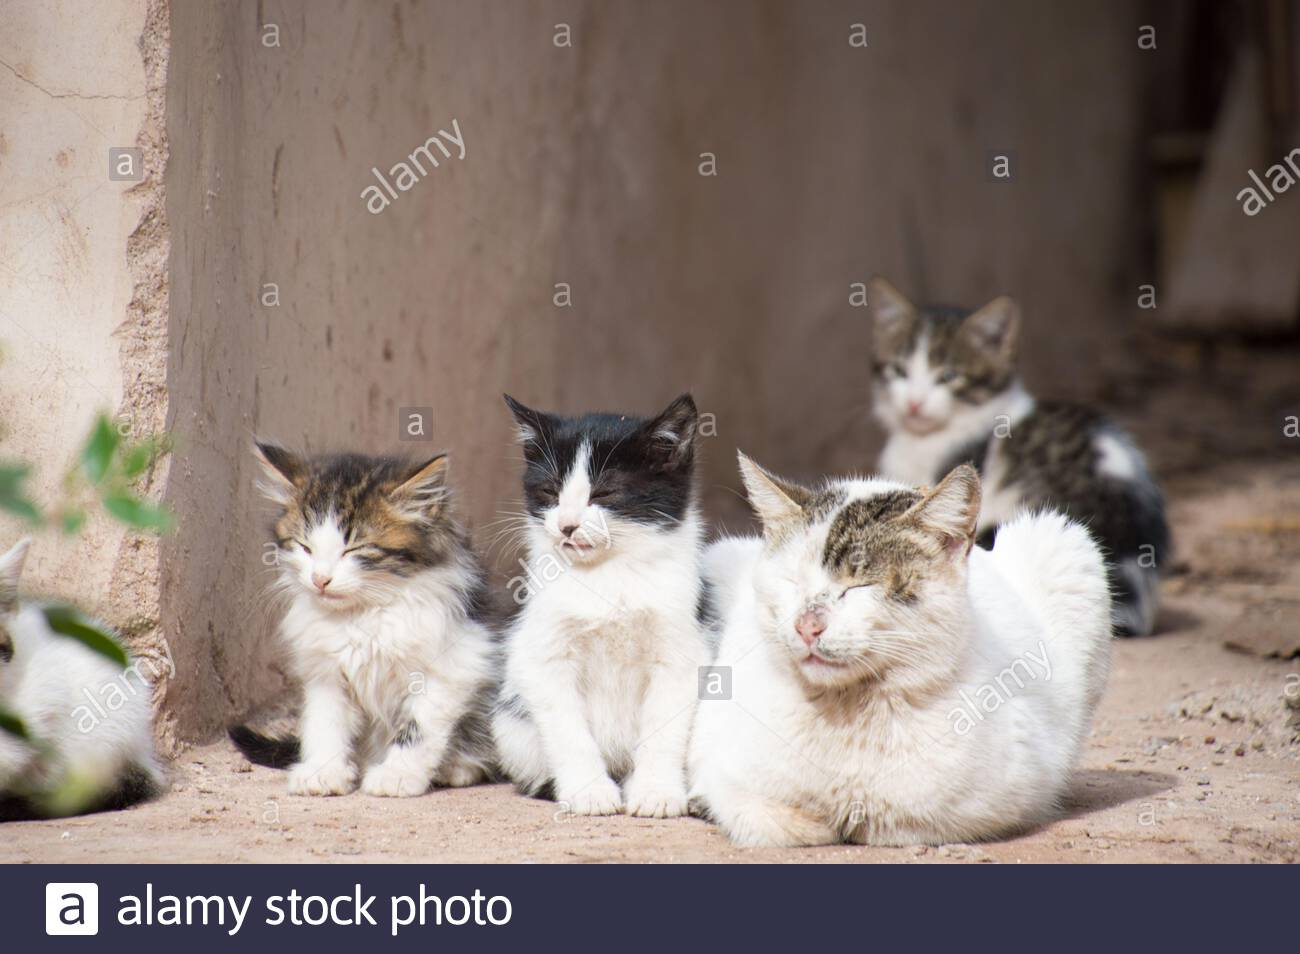 a-grown-cat-and-kittens-on-the-streets-of-marrakesh-marrakech-2BKB4GT.jpg